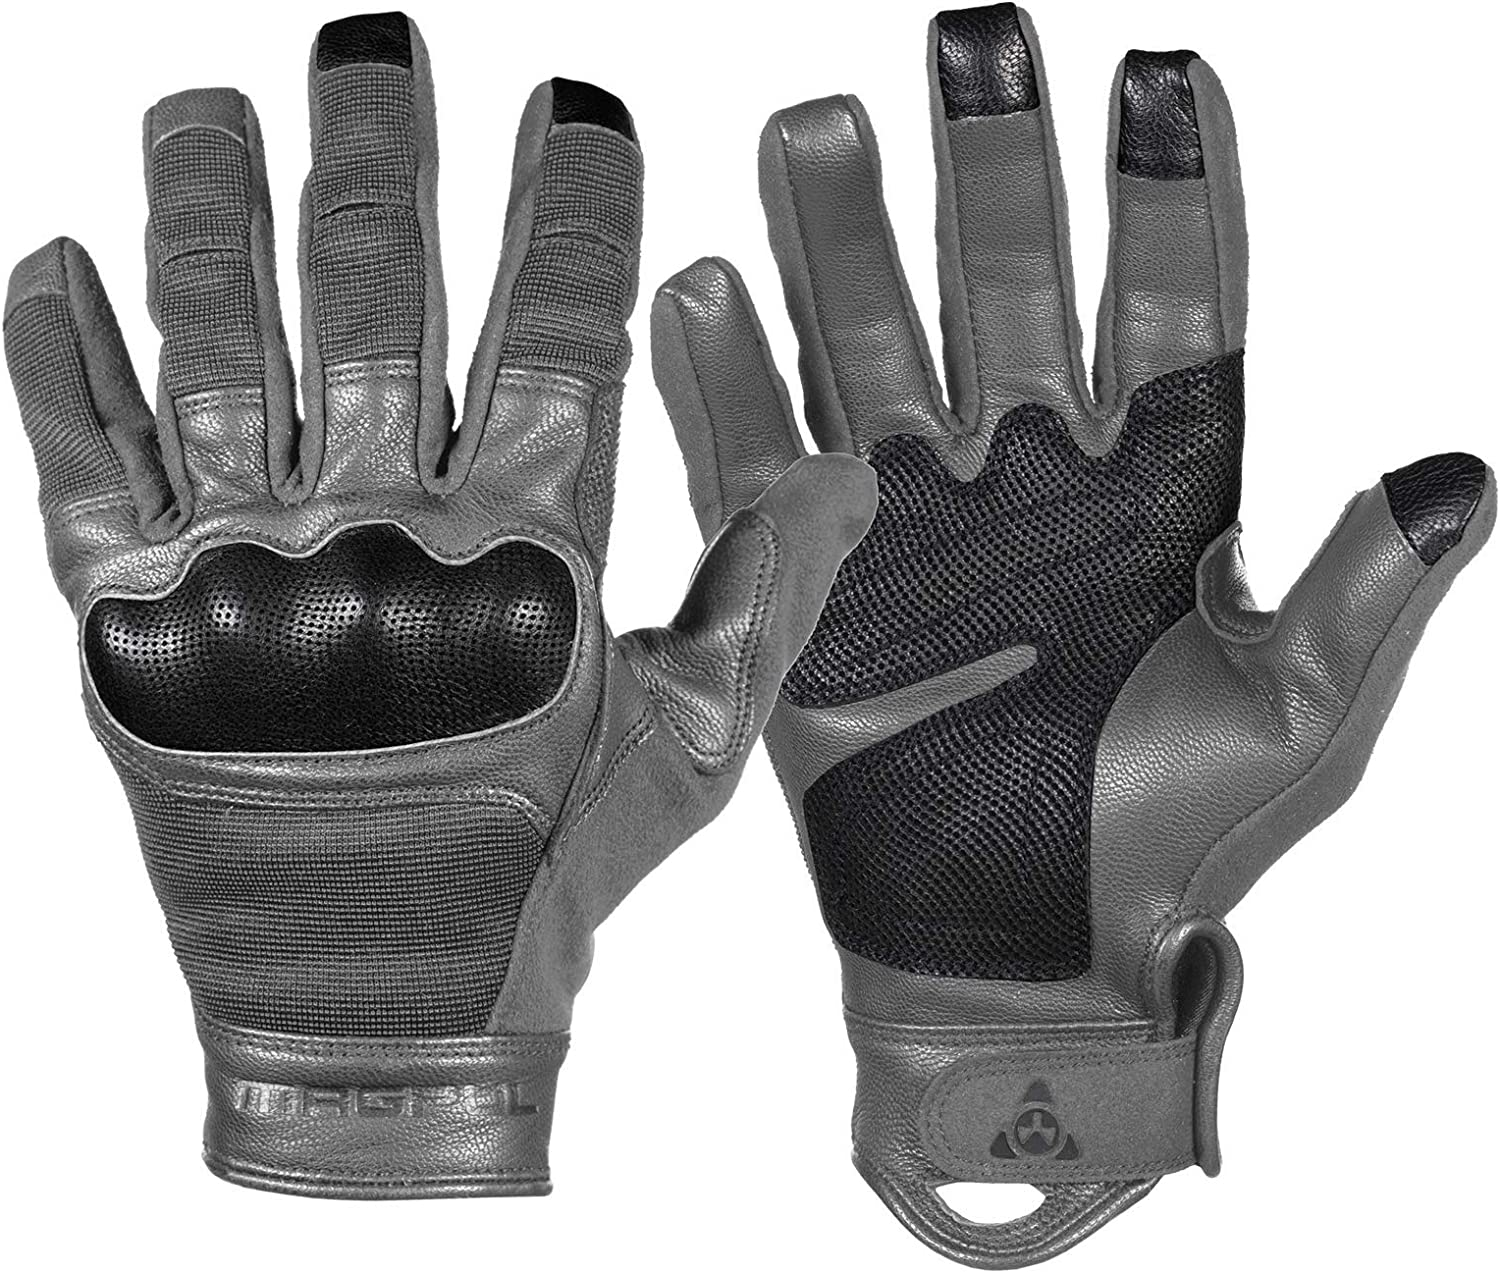 Magpul Core Patrol Tactical Gloves